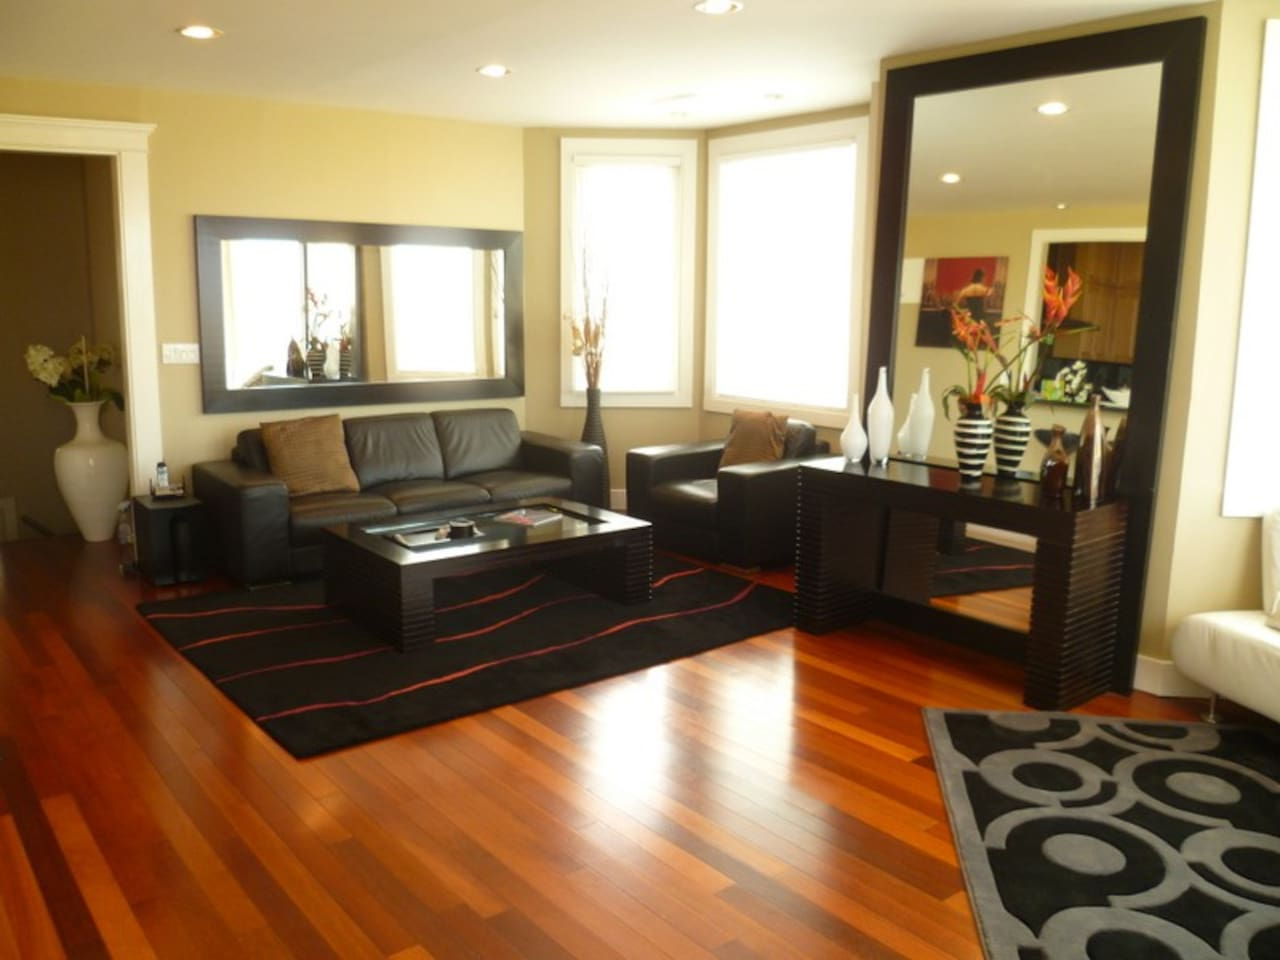 Spacious, Modern, and Comfortable Living Area With Large Windows Throughout!